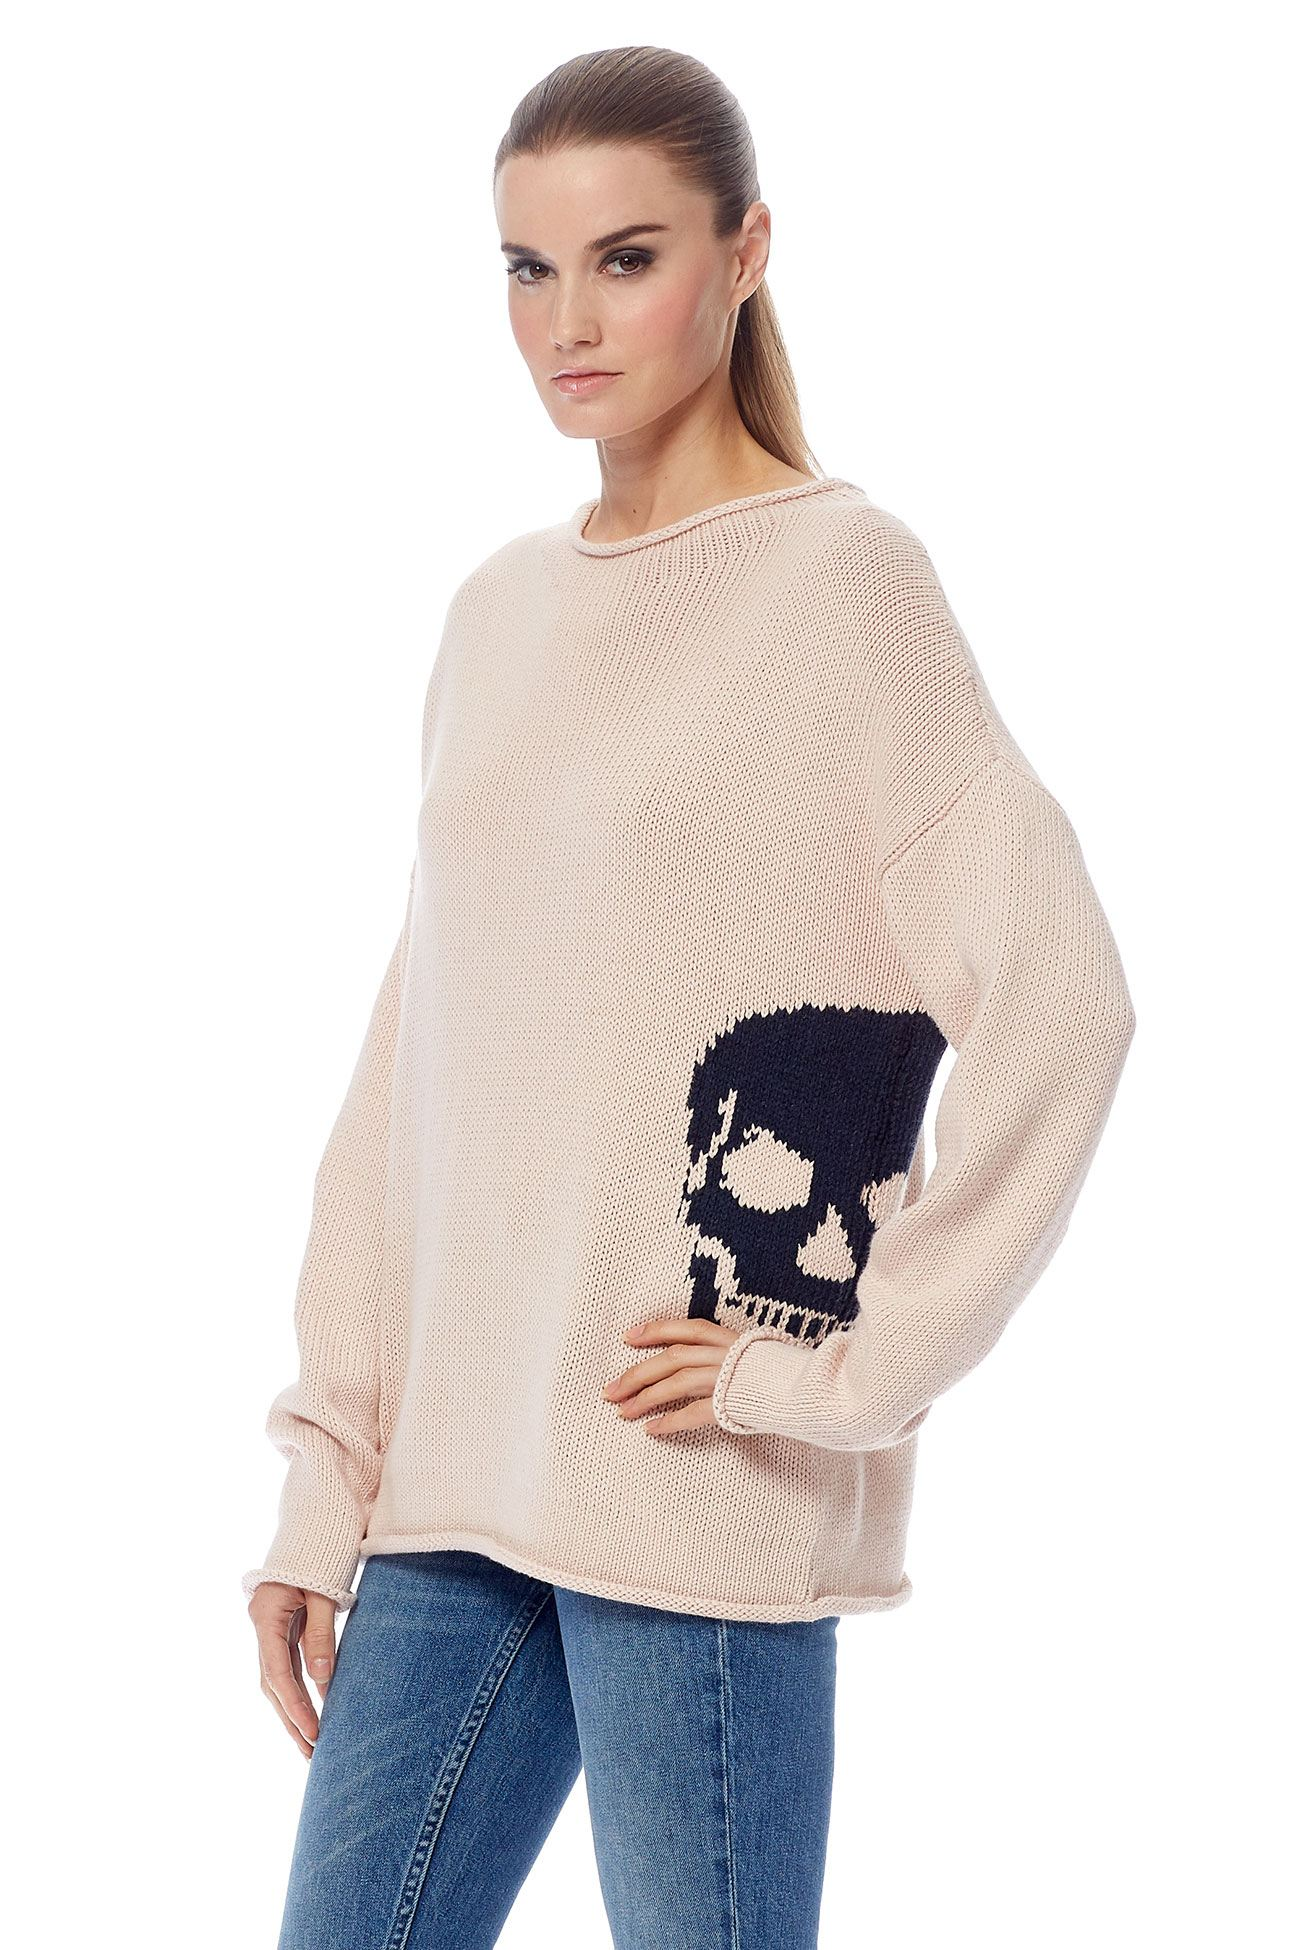 a72d6644ad8 Skull Cashmere  Skull Inspired Cashmere Clothing